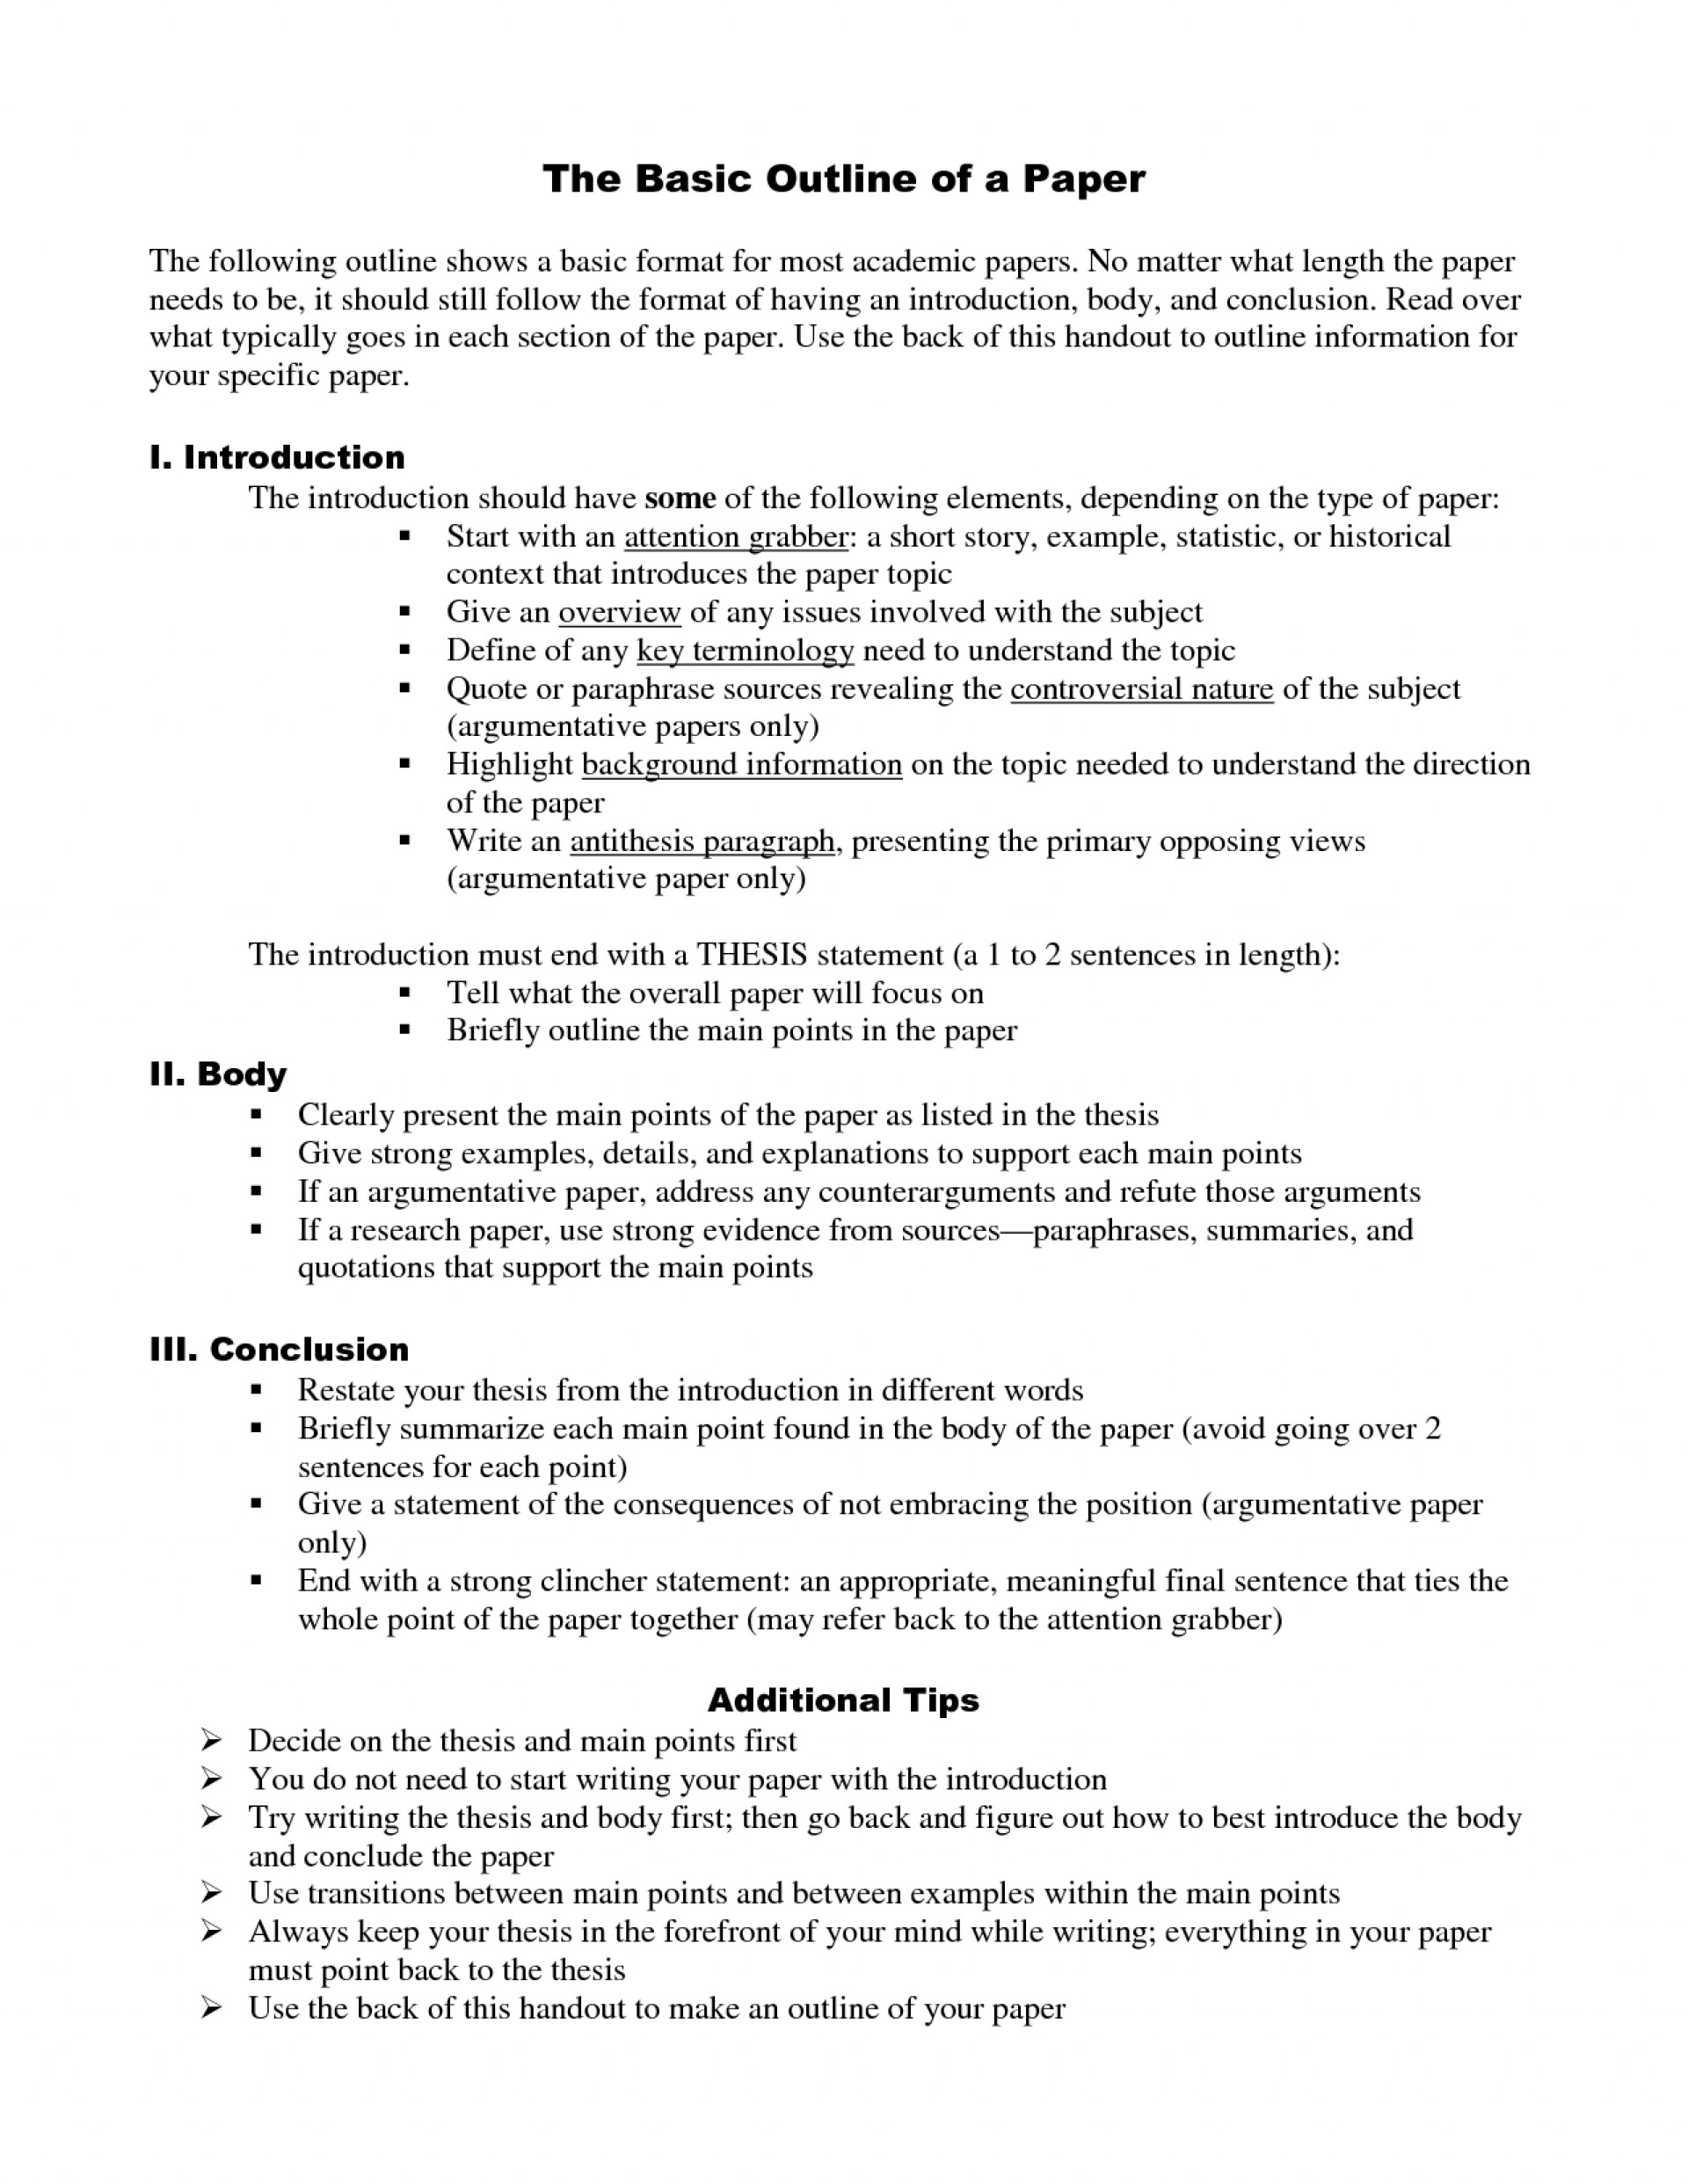 011 Paper Outline Research Template 7gkv1usl For Phenomenal A Mla How To Write An Ppt On Autism 1920